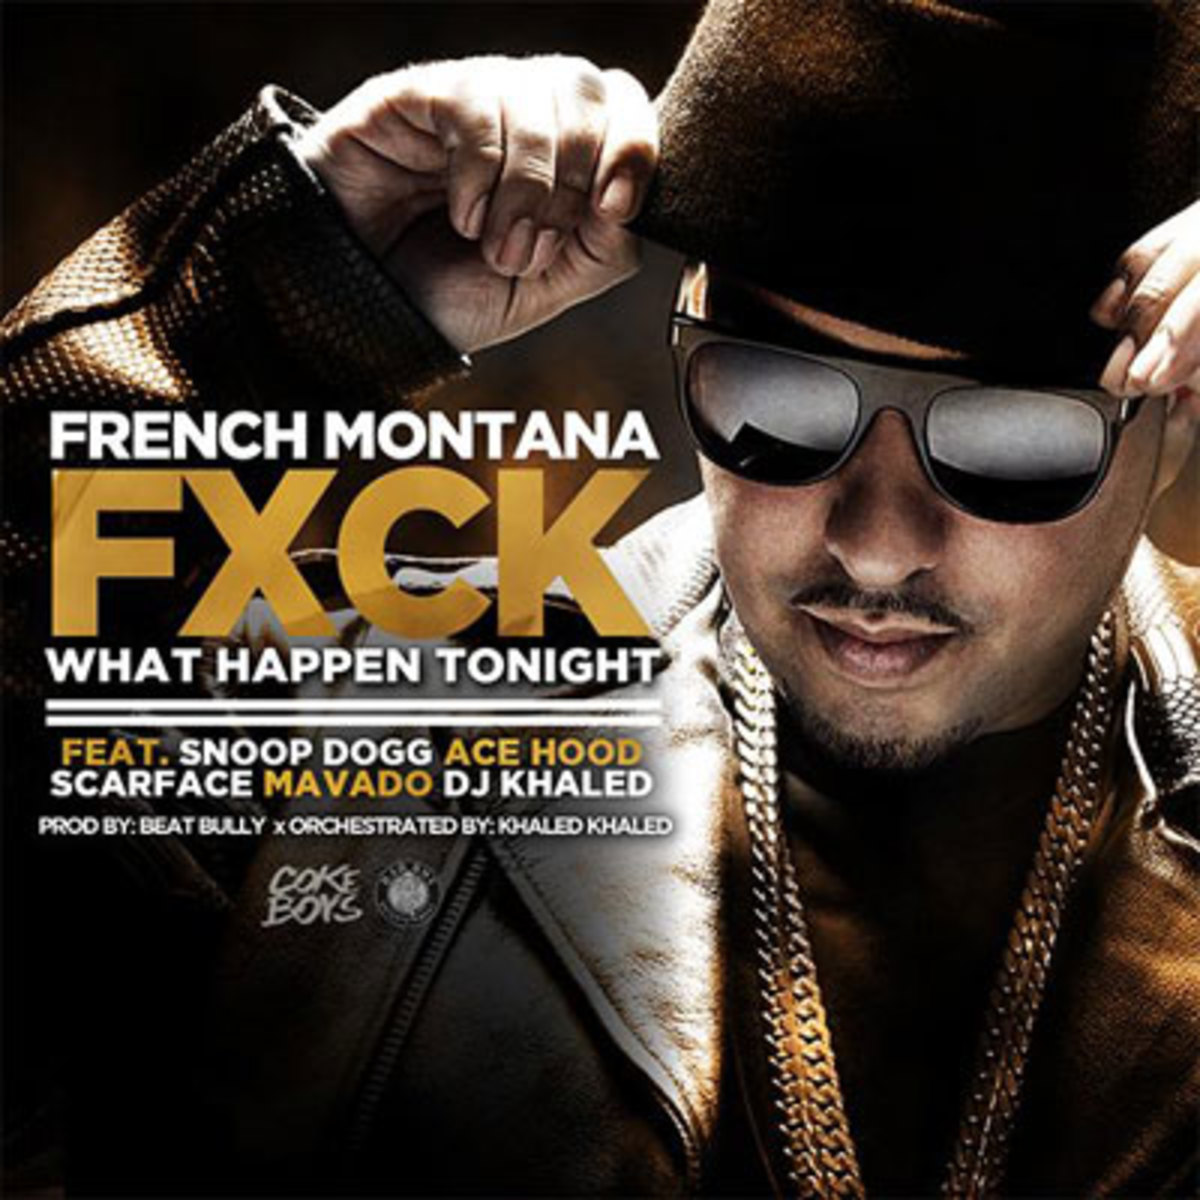 frenchmontana-fwhathappentonight.jpg